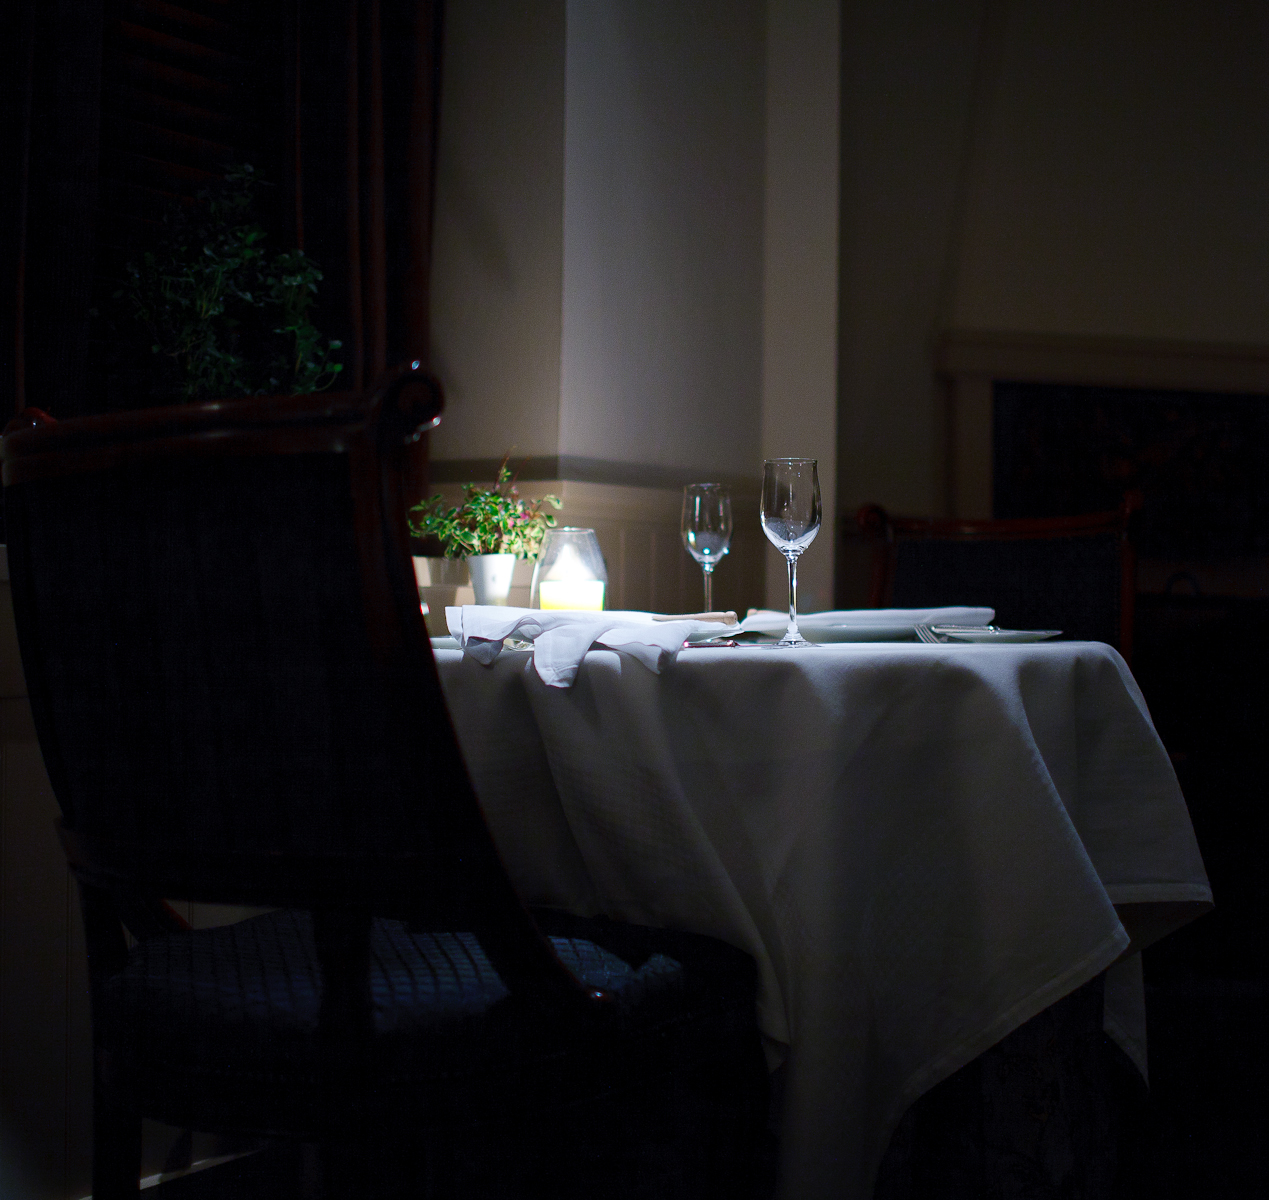 A table at The French Laundry